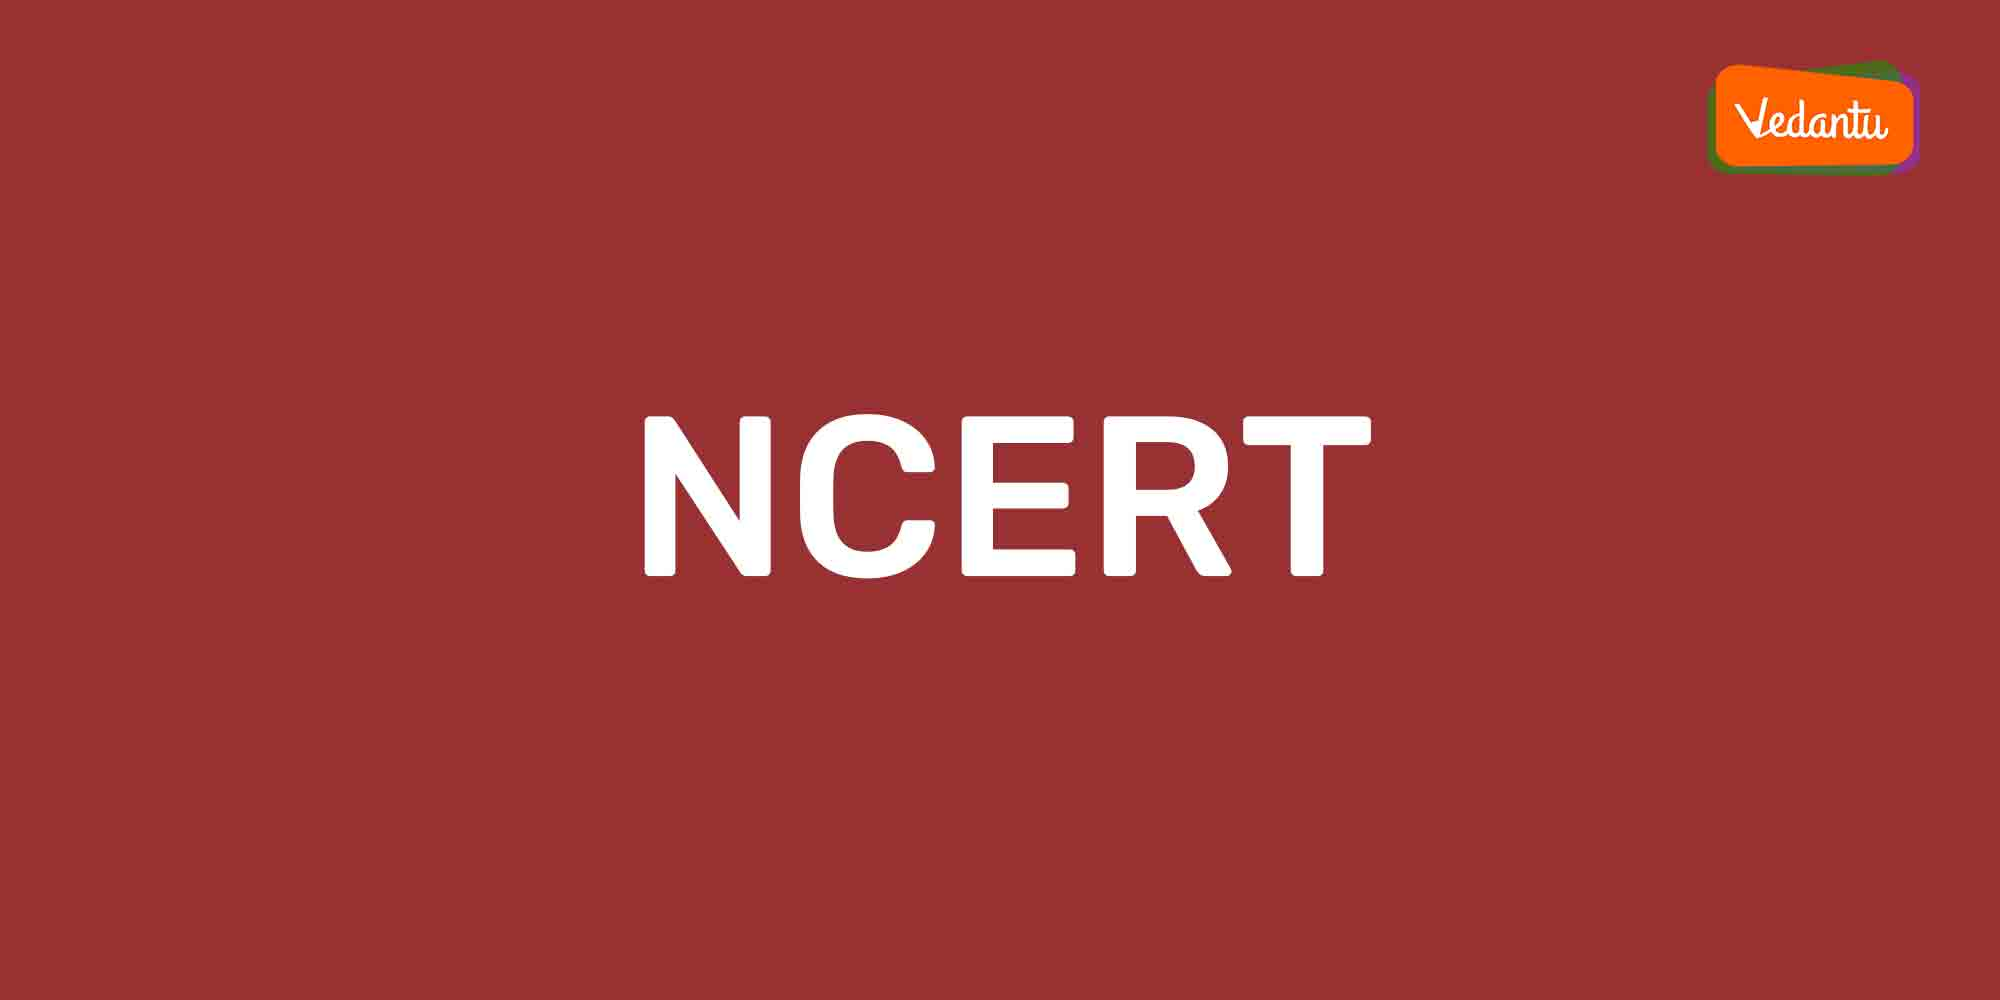 Get Your Hands on the Best NCERT Solution for Class 10